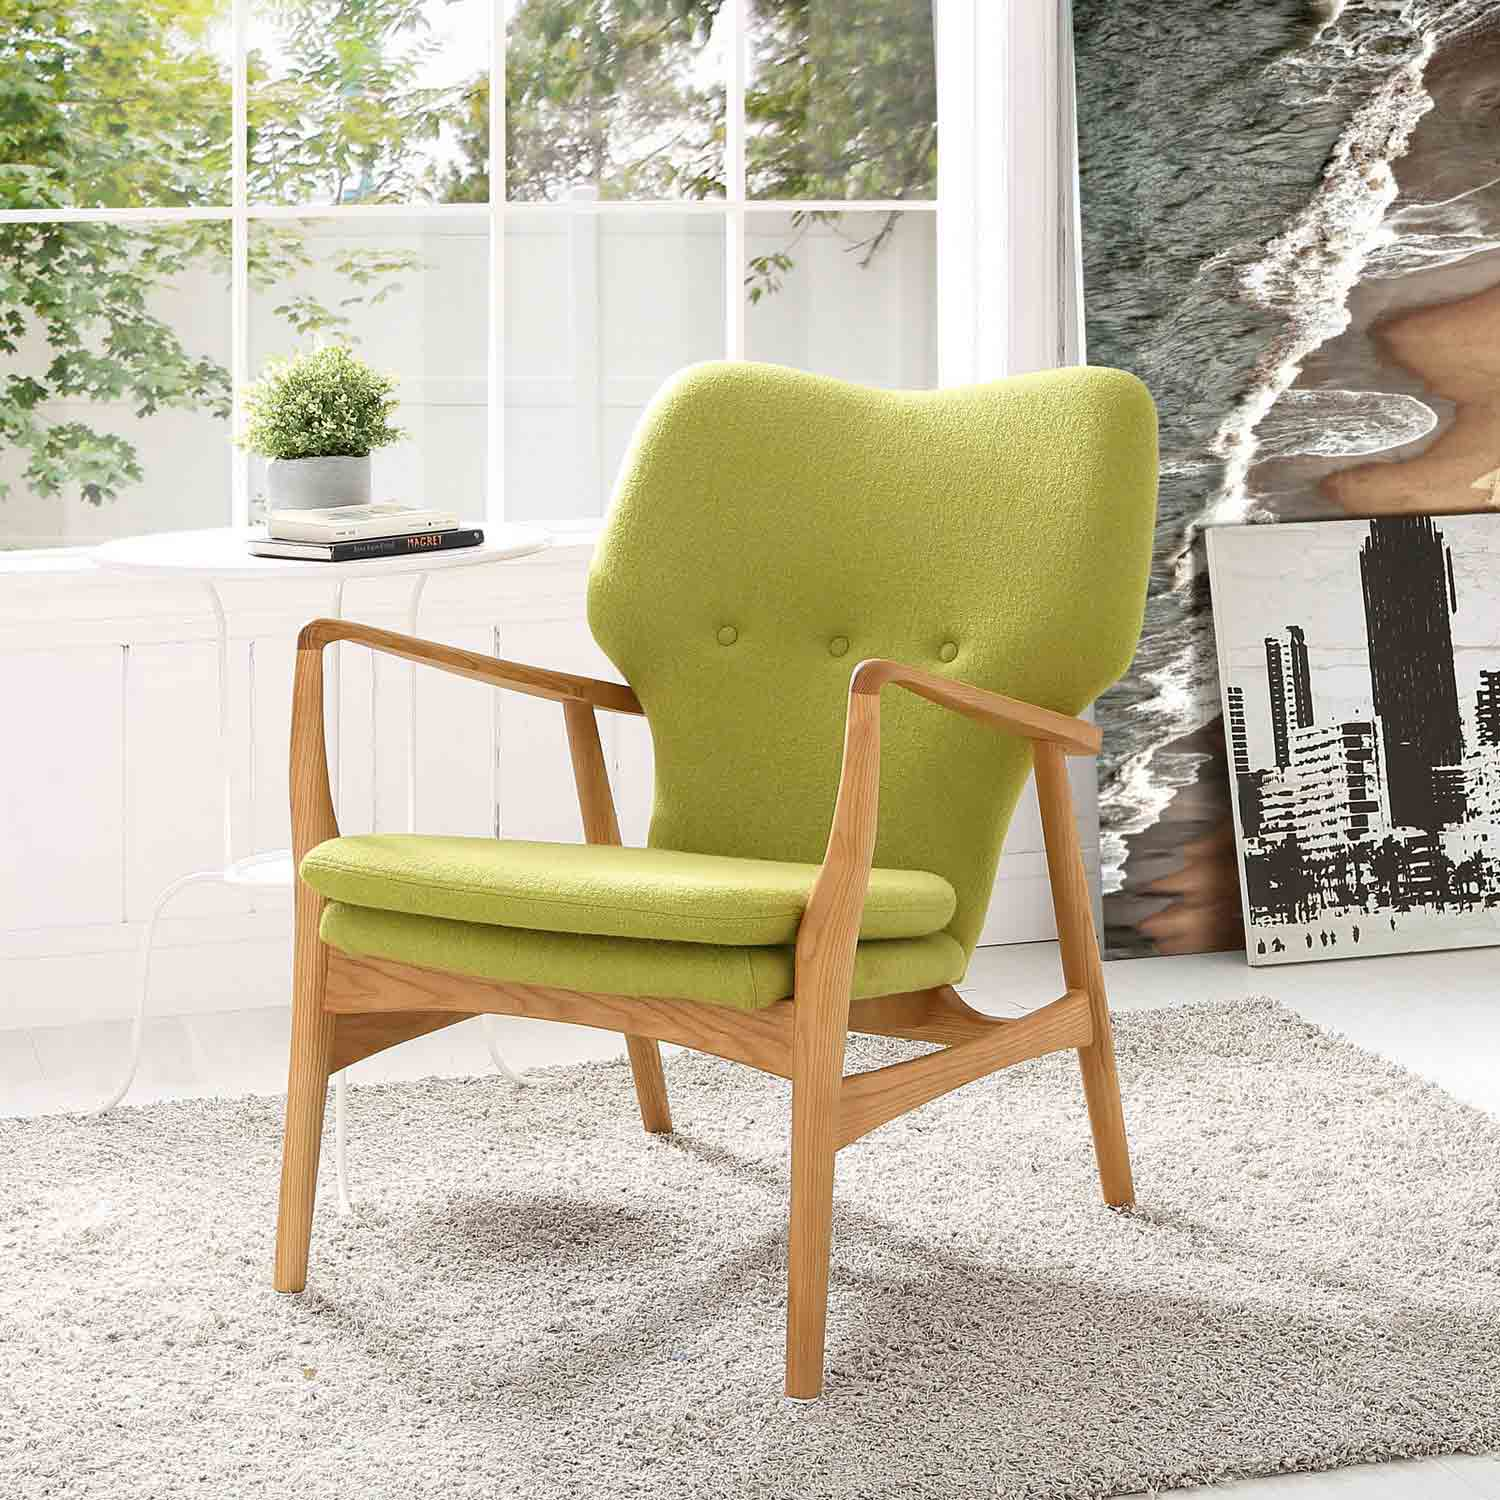 Modway Heed Lounge Chair - Birch Green